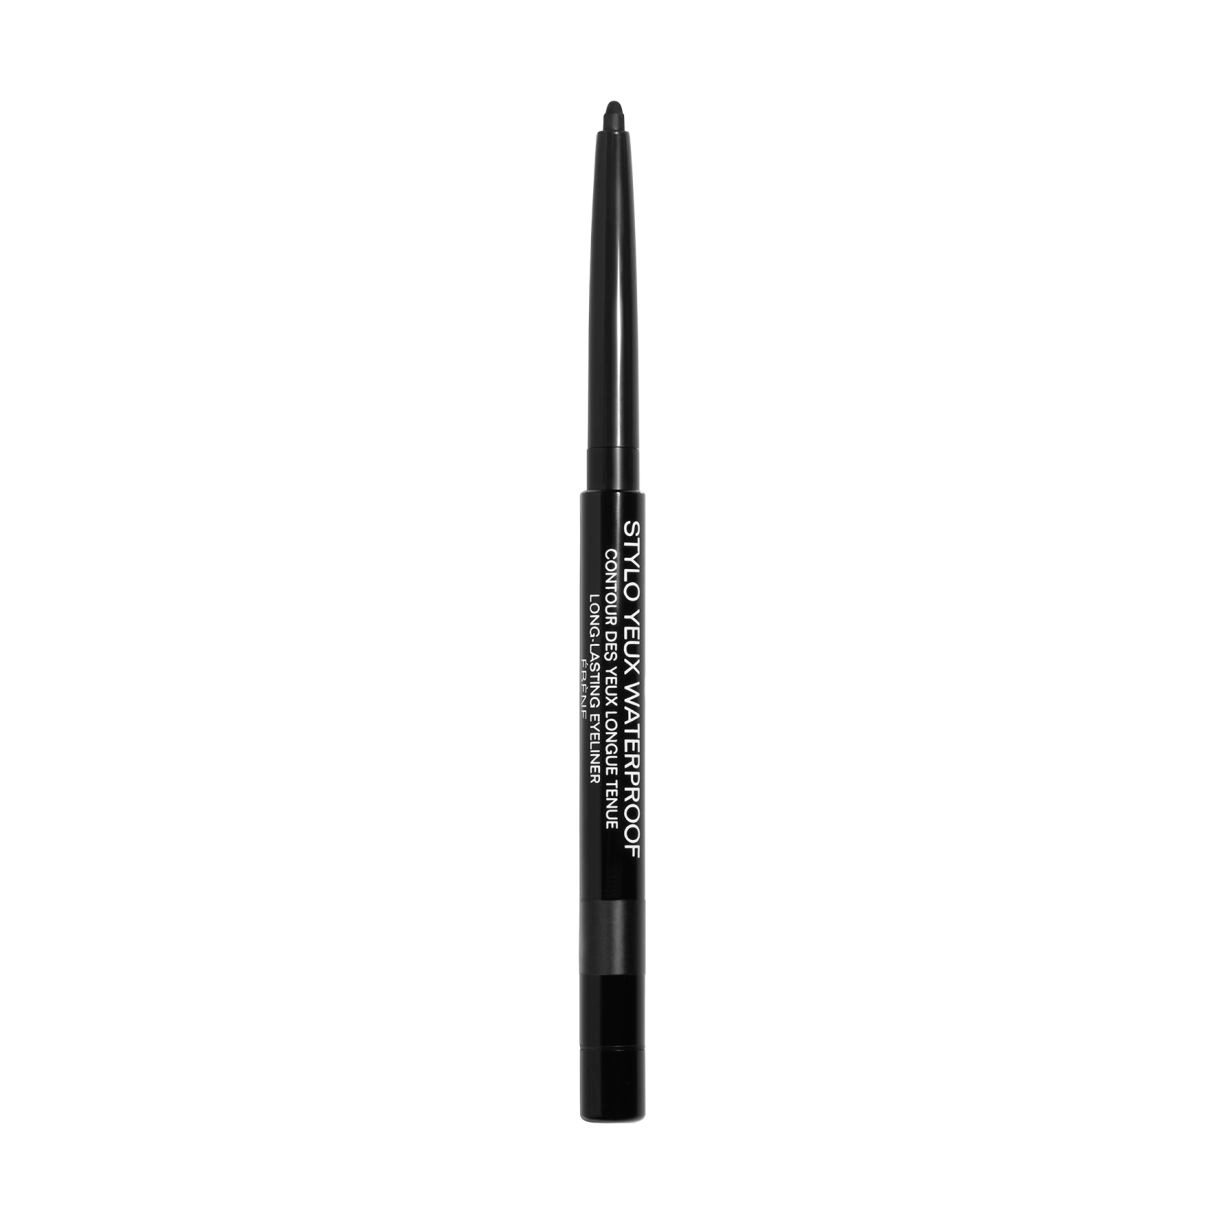 STYLO YEUX WATERPROOF 防水眼線筆